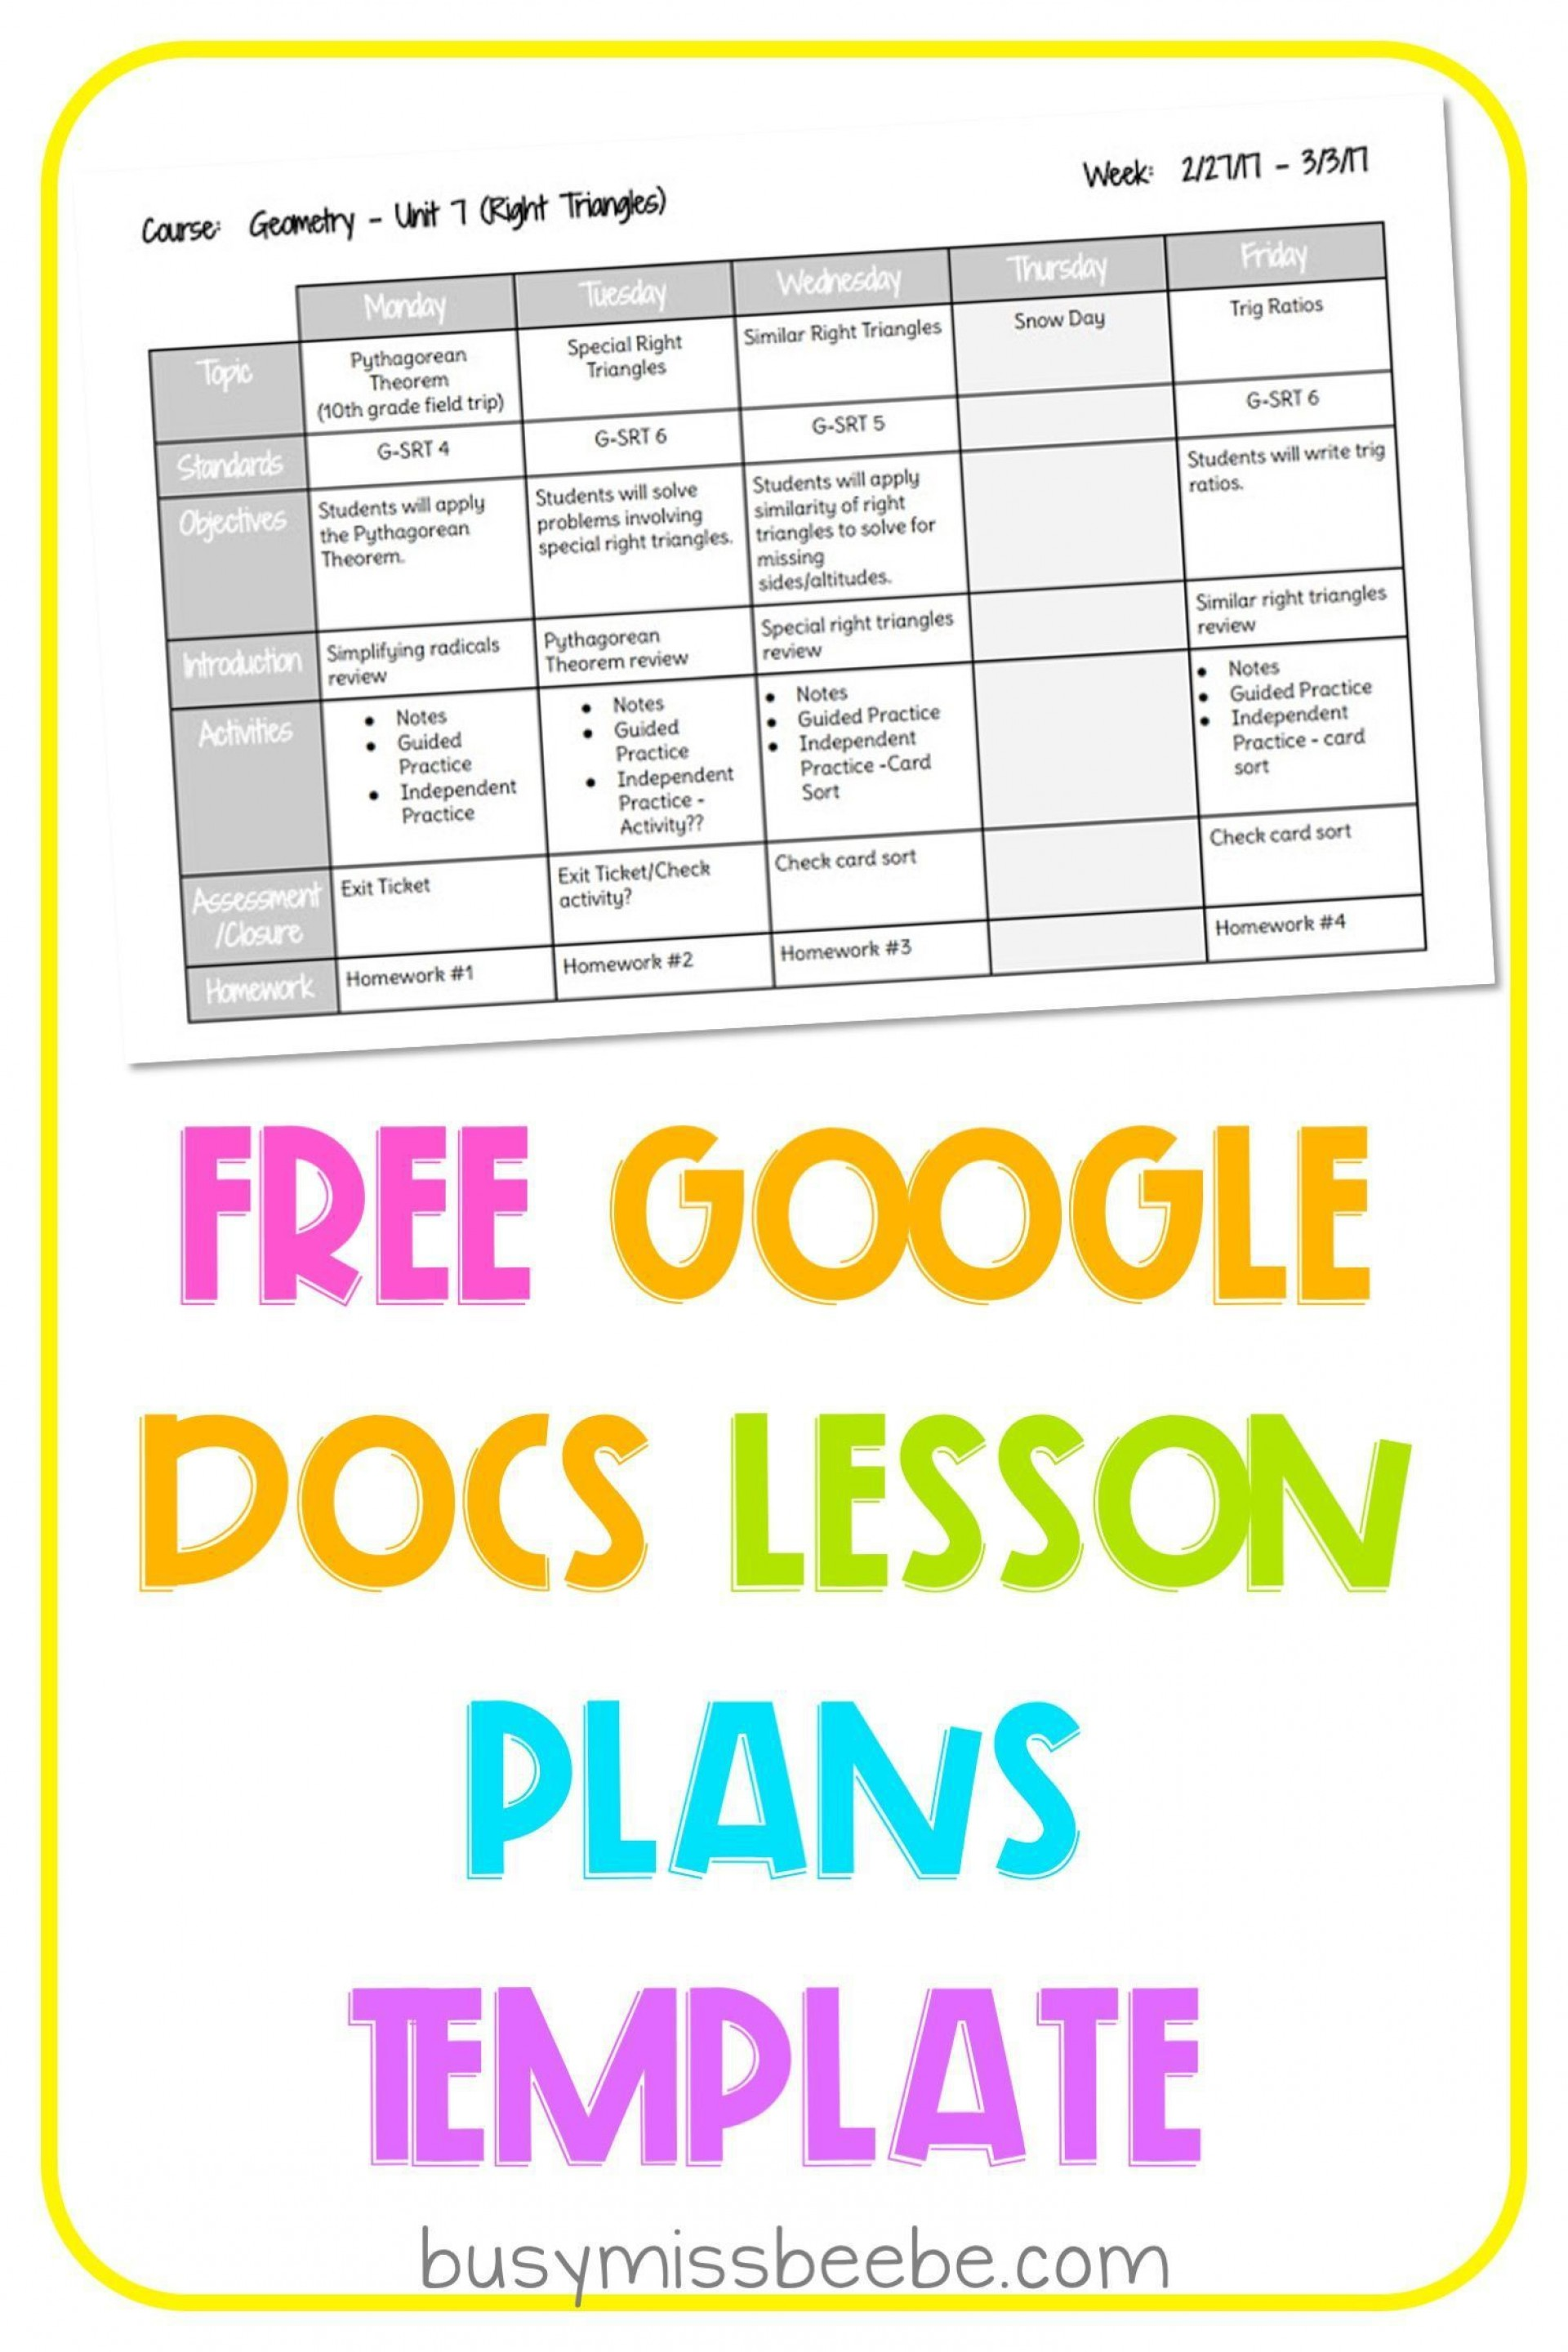 000 Wonderful Free Weekly Lesson Plan Template Google Doc Picture 1920